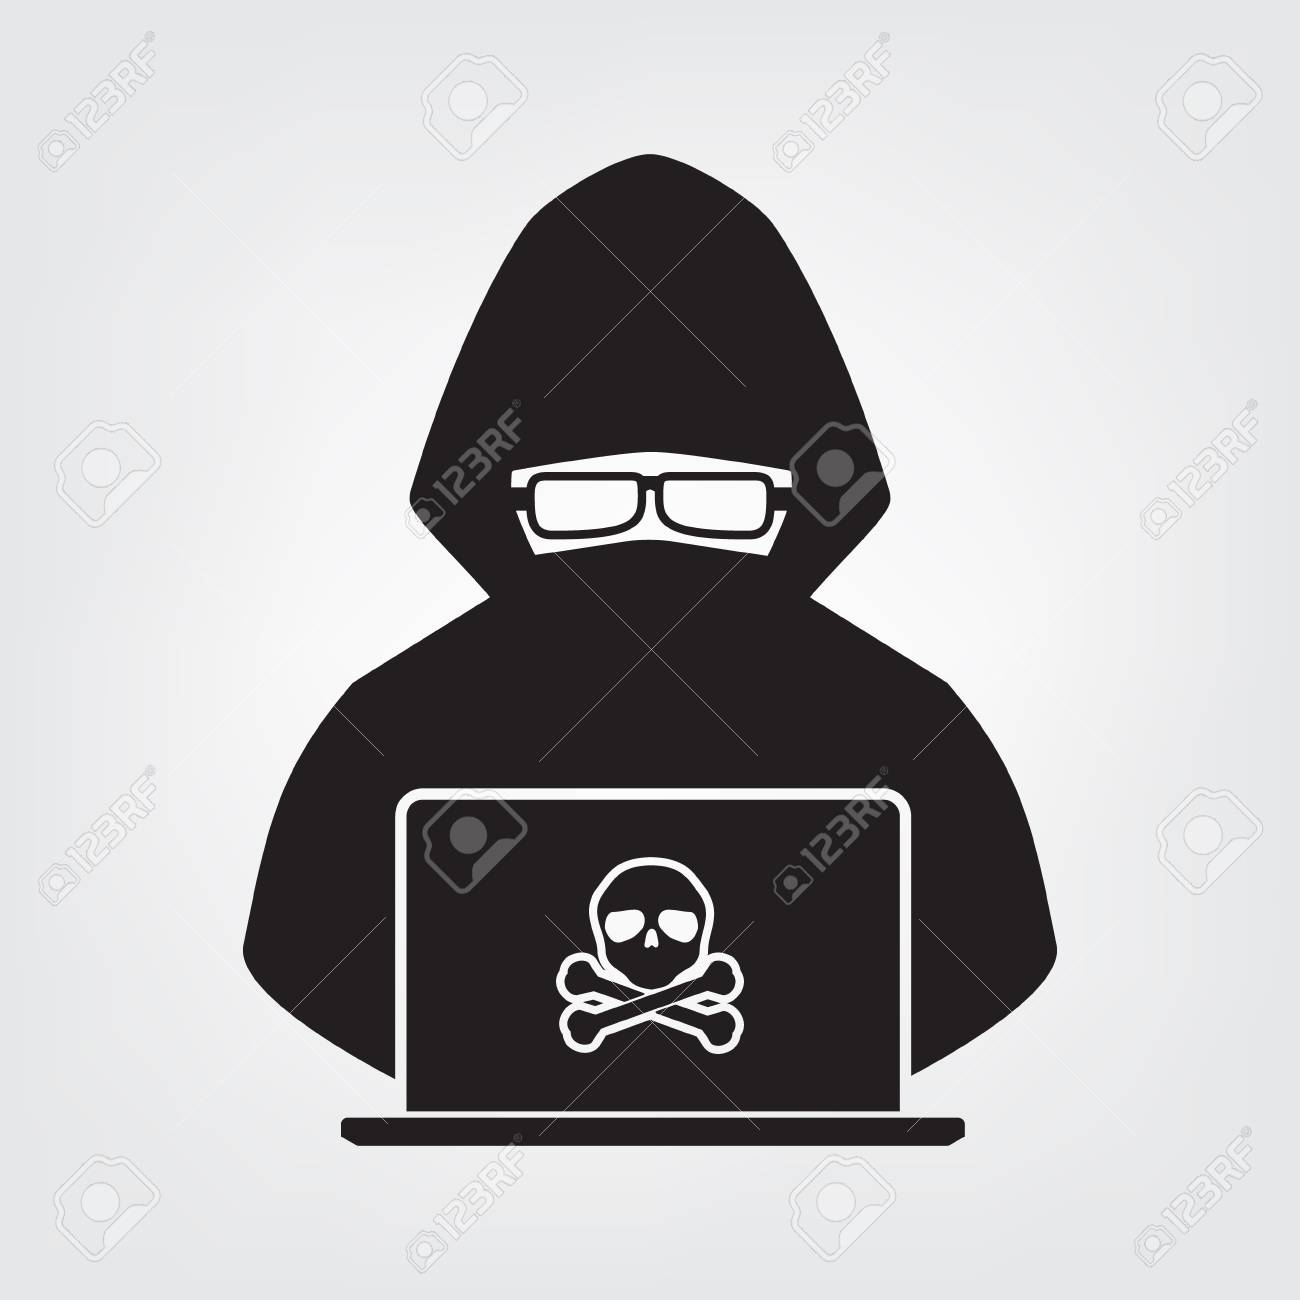 Hacker Icon Black Shadow With Skull Cross Bone On White Background Royalty Free Cliparts Vectors And Stock Illustration Image 92121319